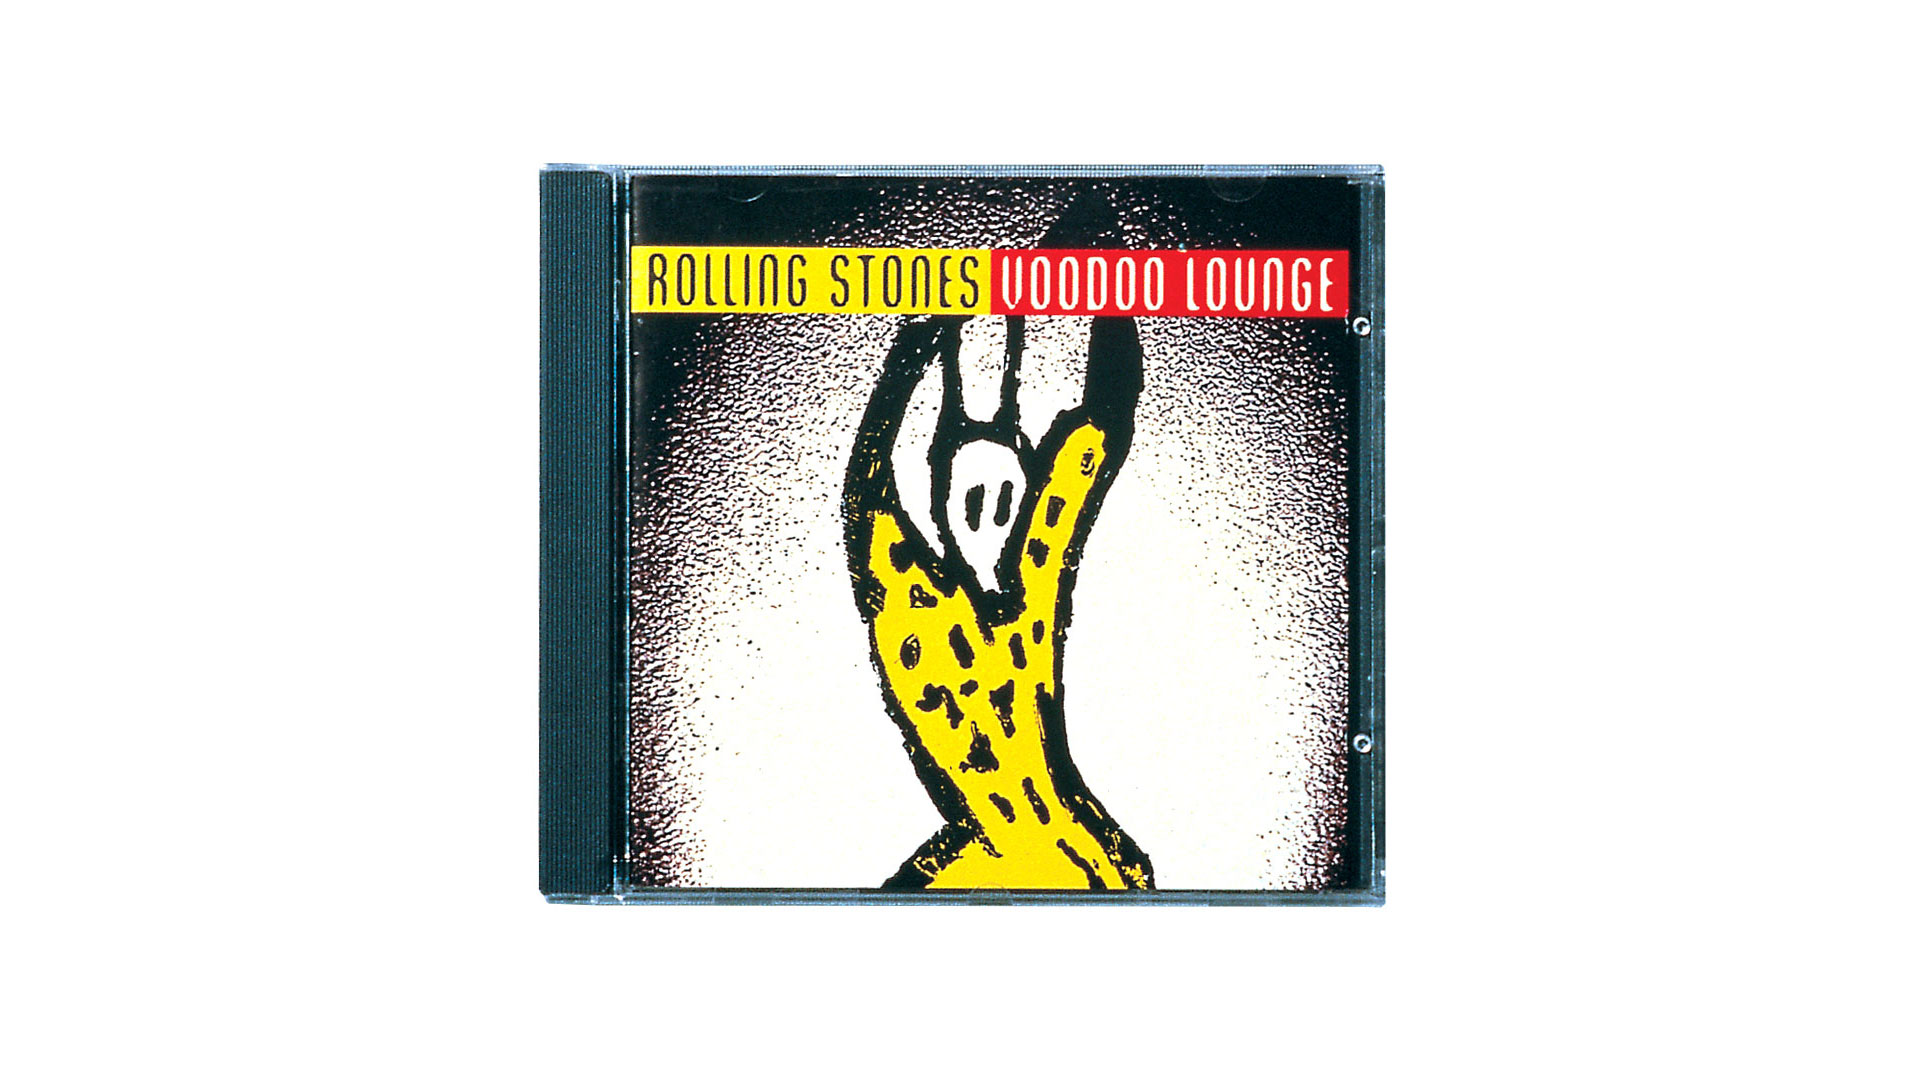 rolling stones cd cover design